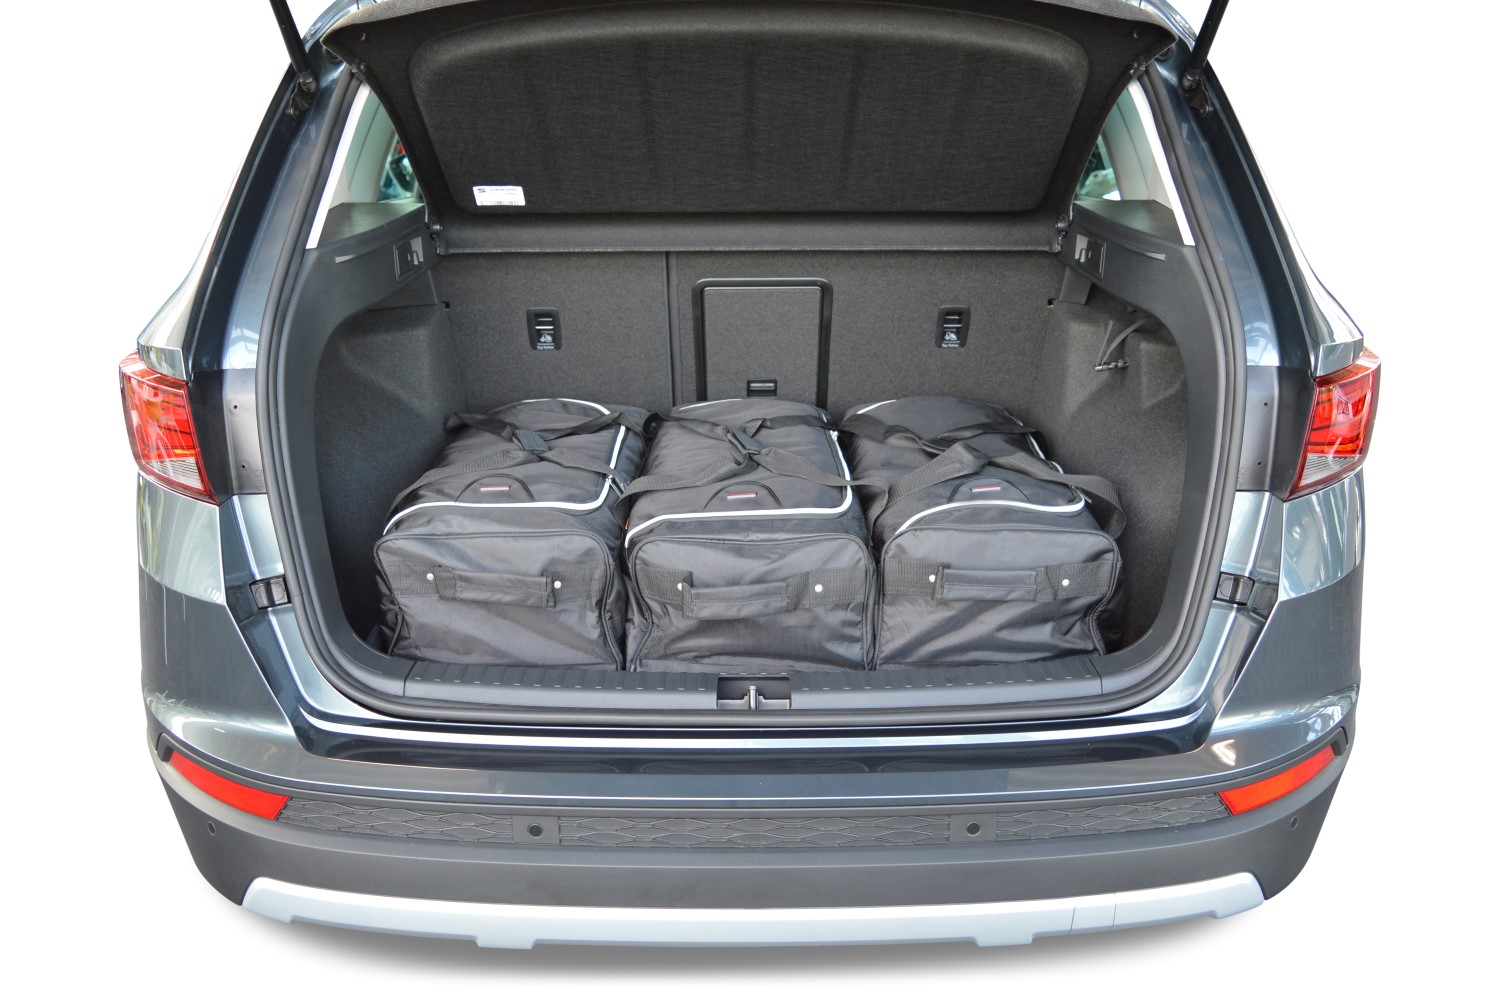 ateca seat ateca 2016 present car bags travel bags low boot floor no organiser no 4wd. Black Bedroom Furniture Sets. Home Design Ideas